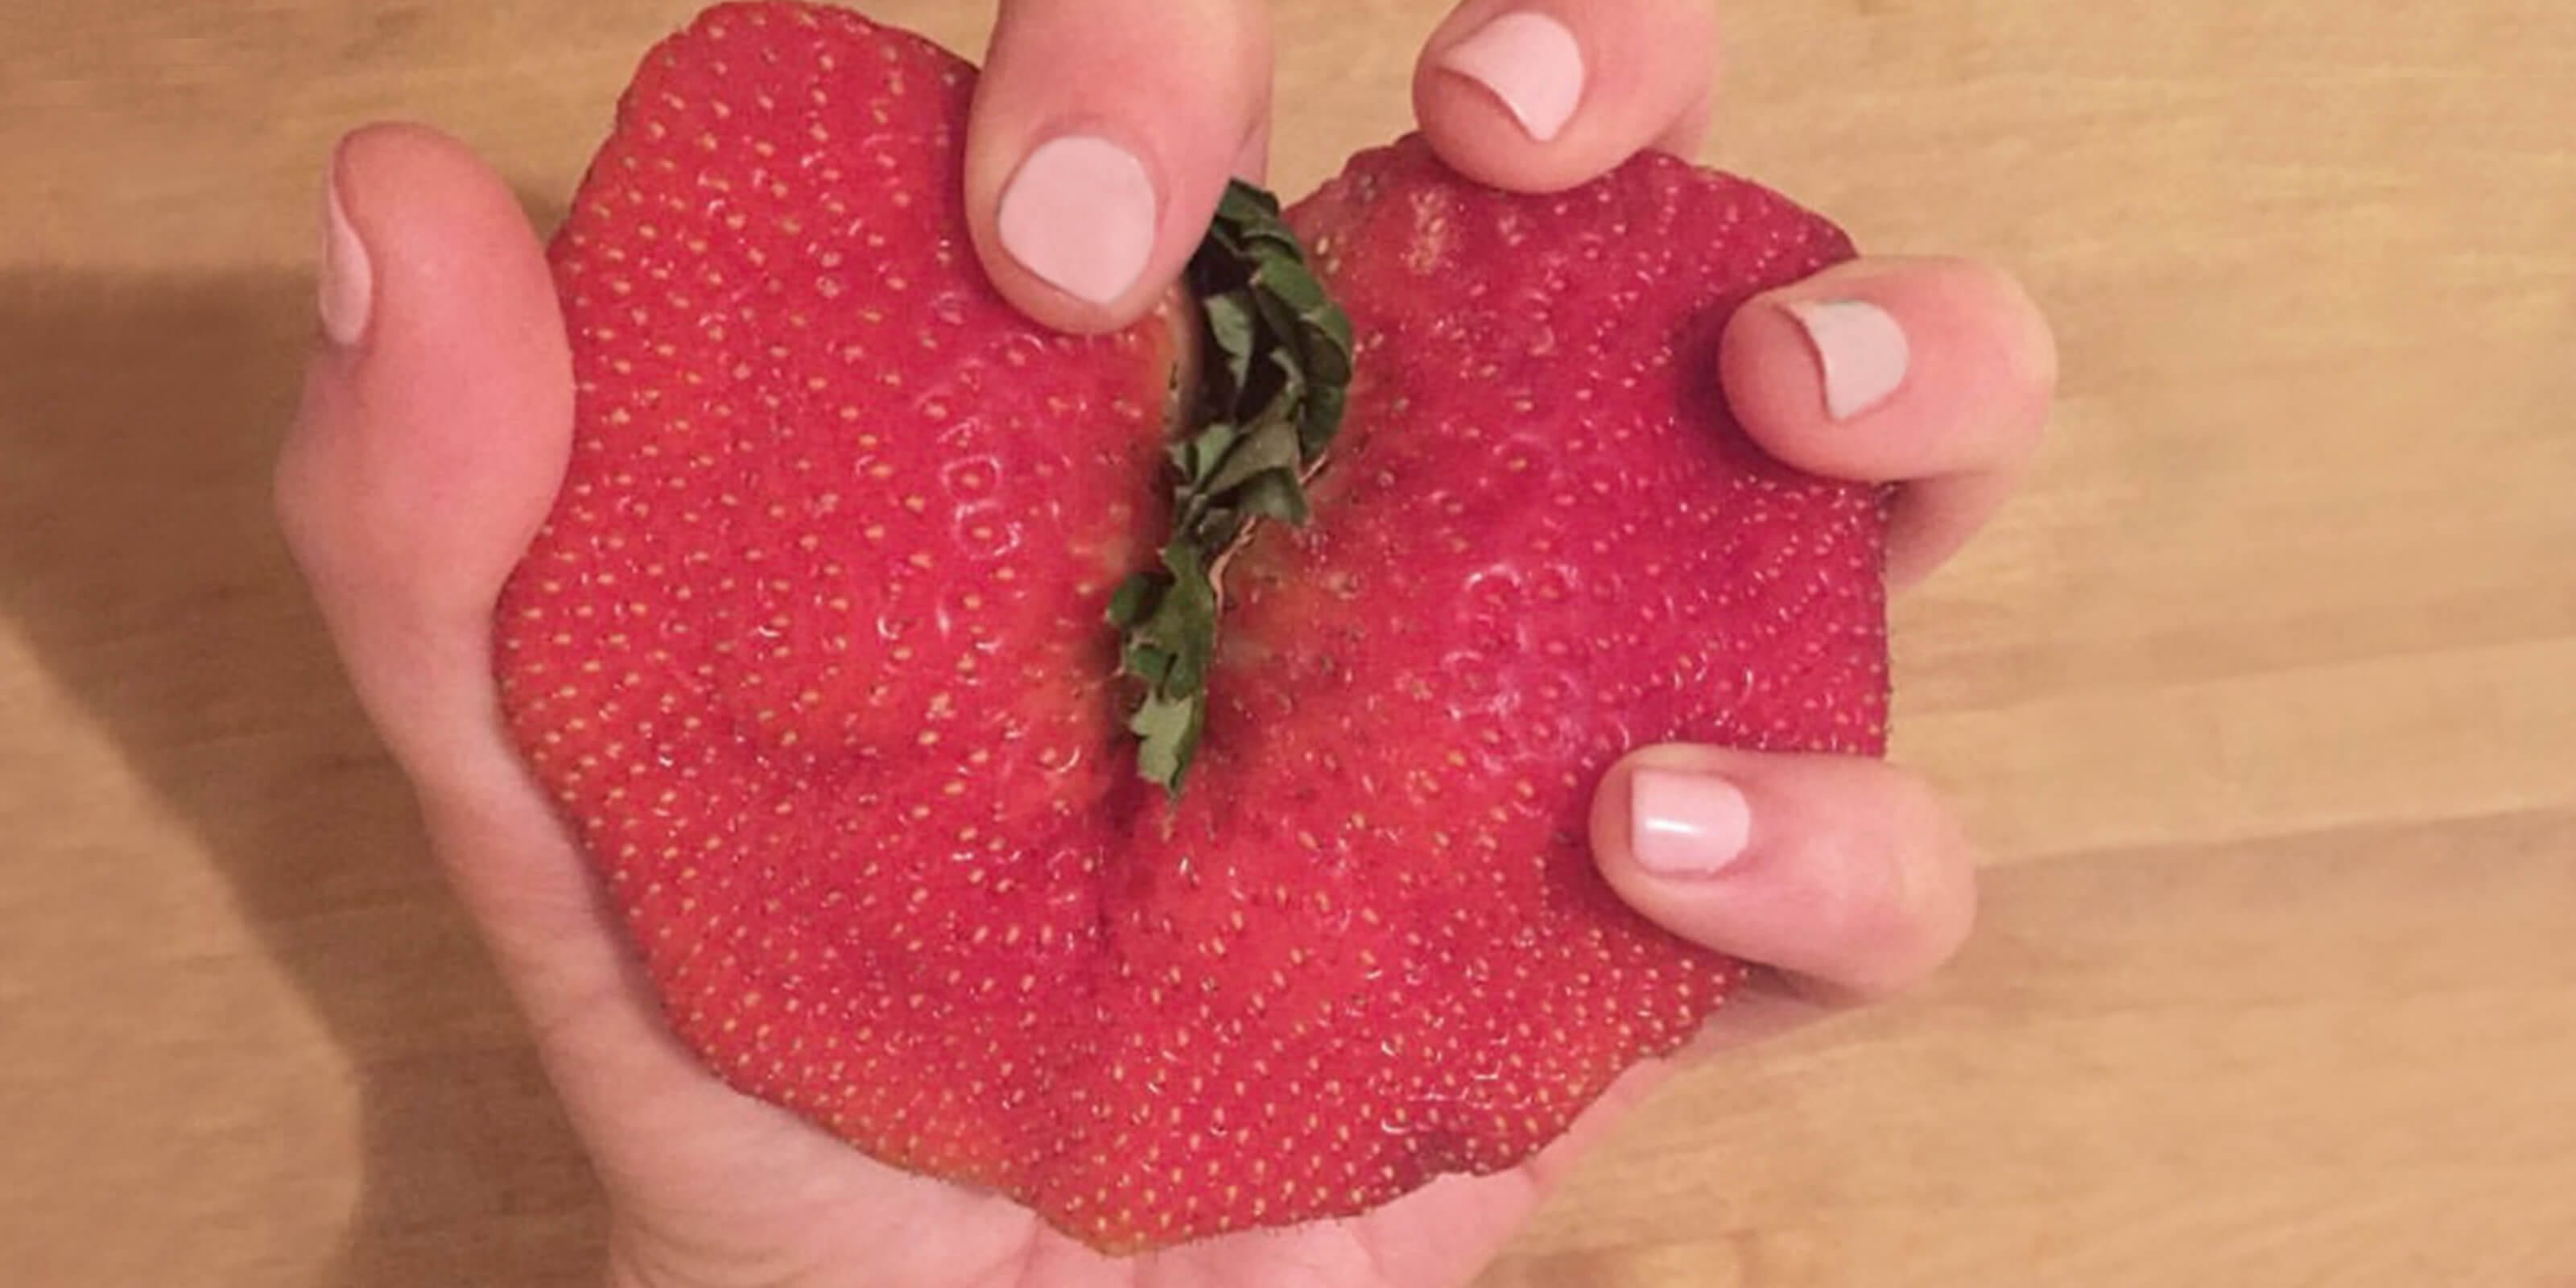 big imperfect strawberry